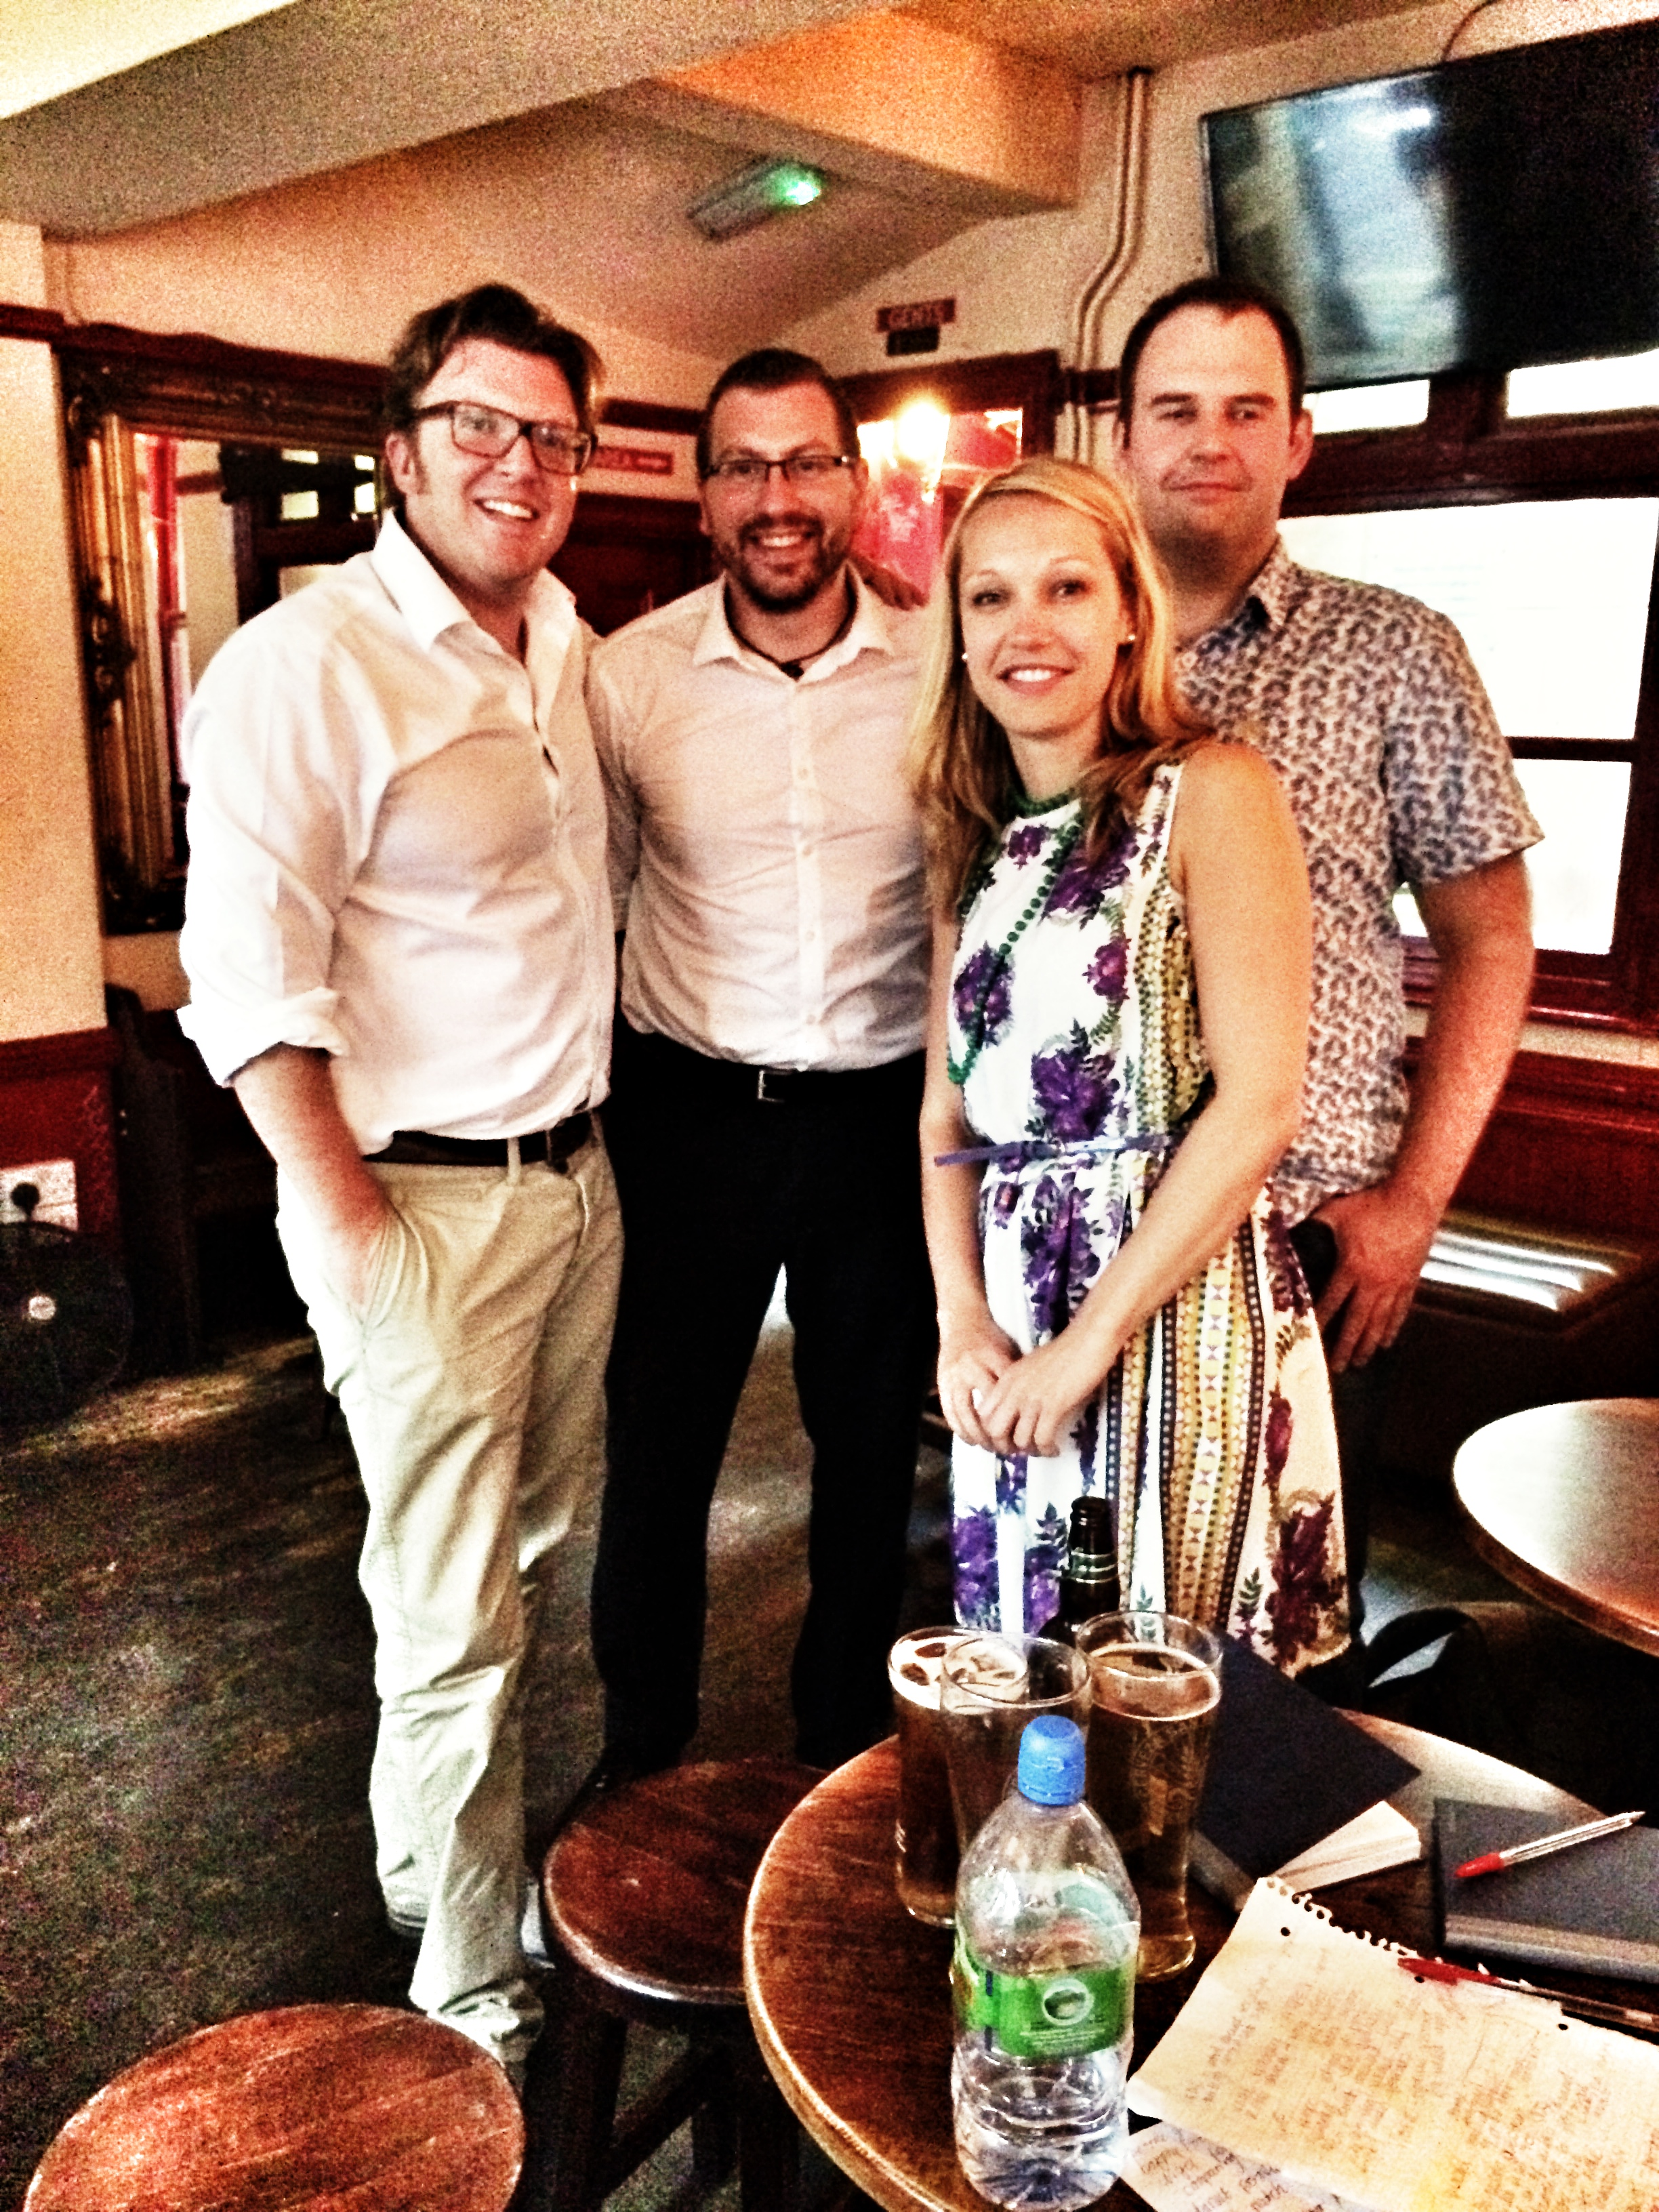 From left to right: Matt Shearer, Michael Satterthwaite, Melanie Moeller, Paul Eccles